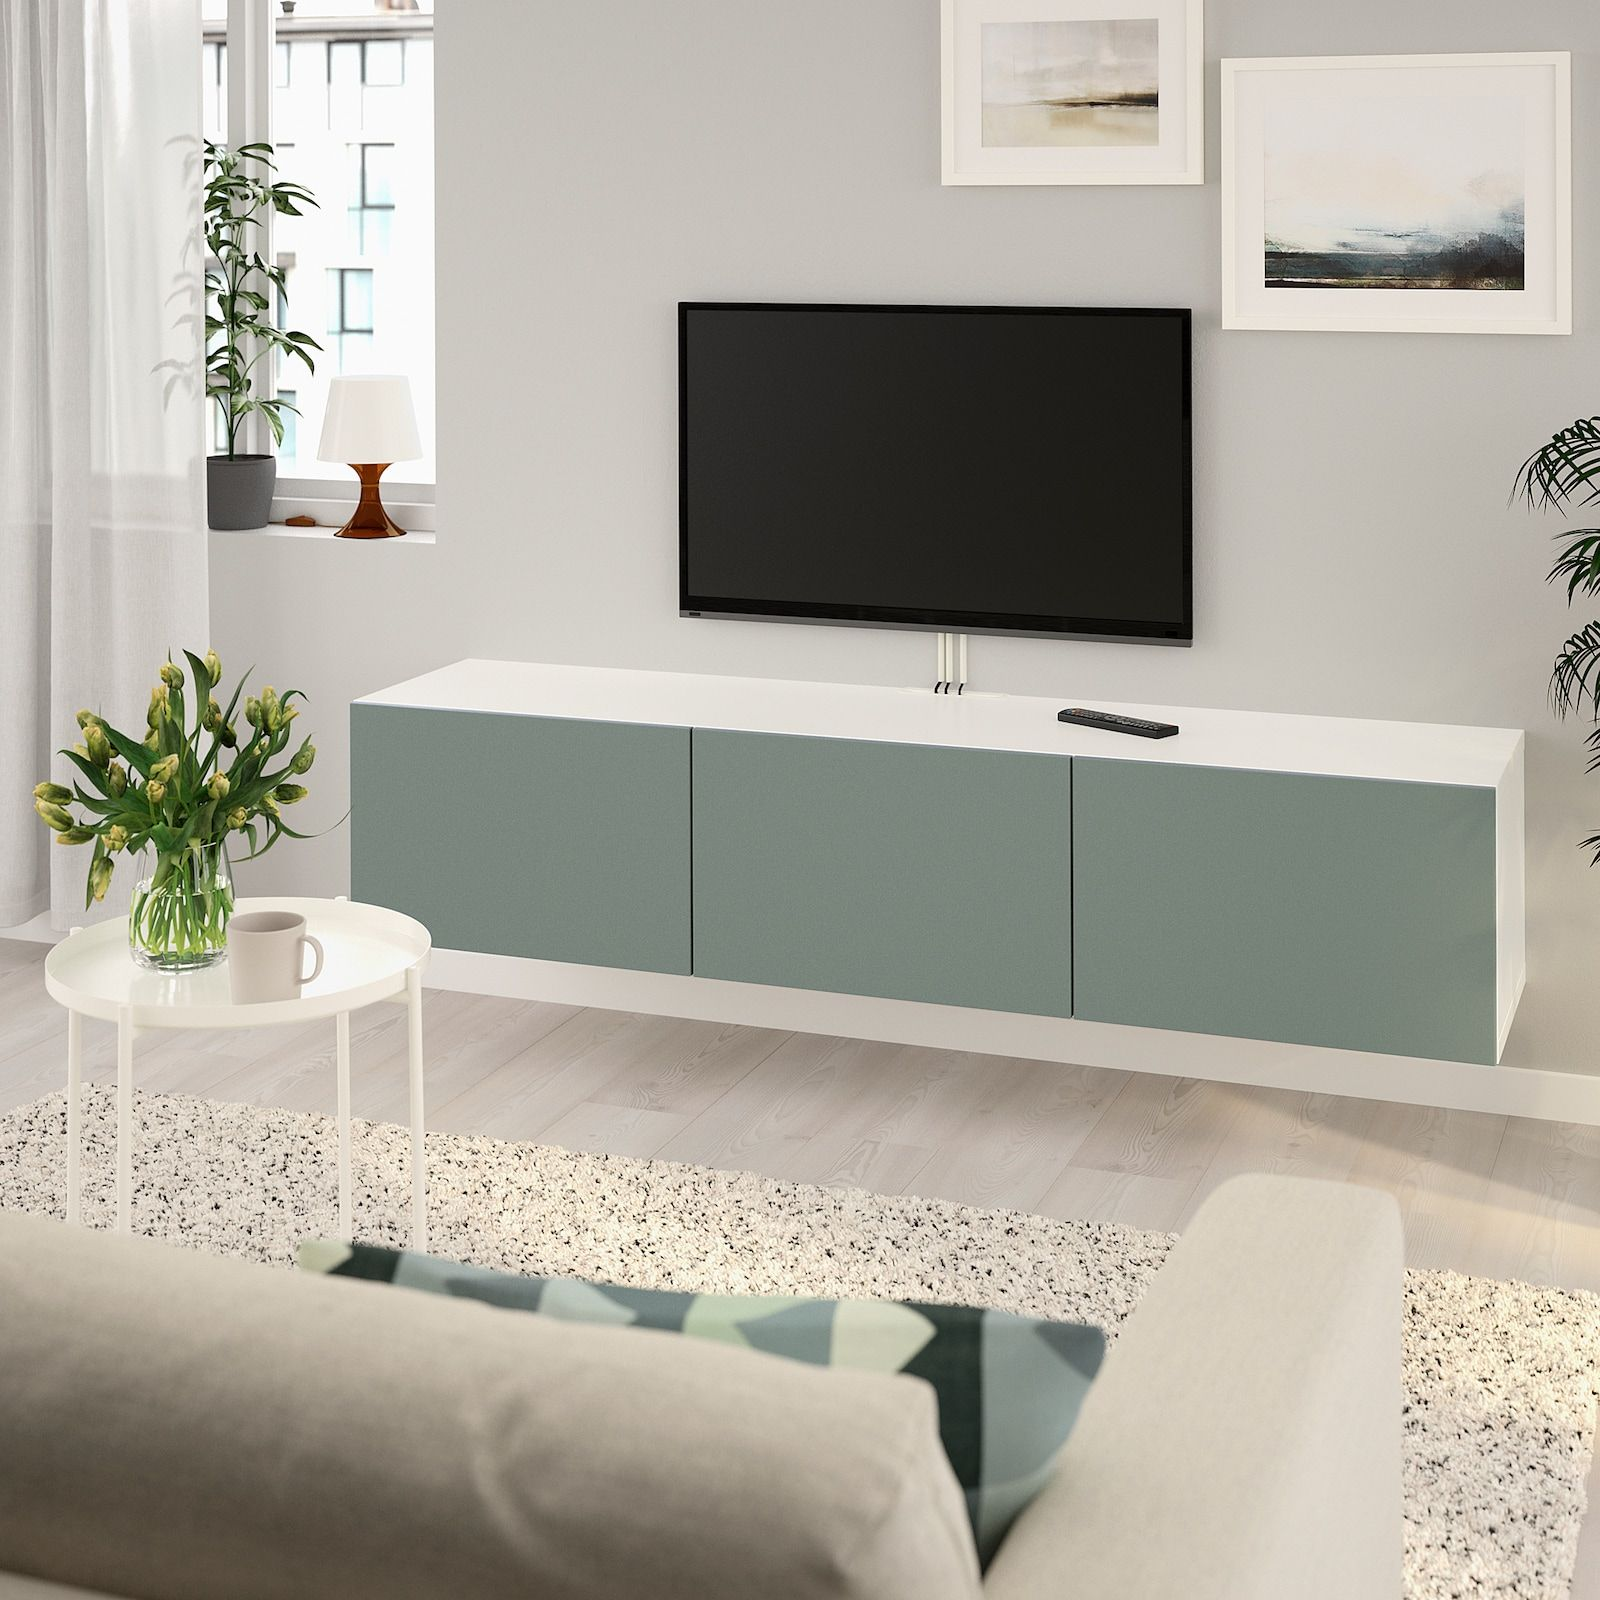 12+ Ikea 70 tv stand ideas in 2021